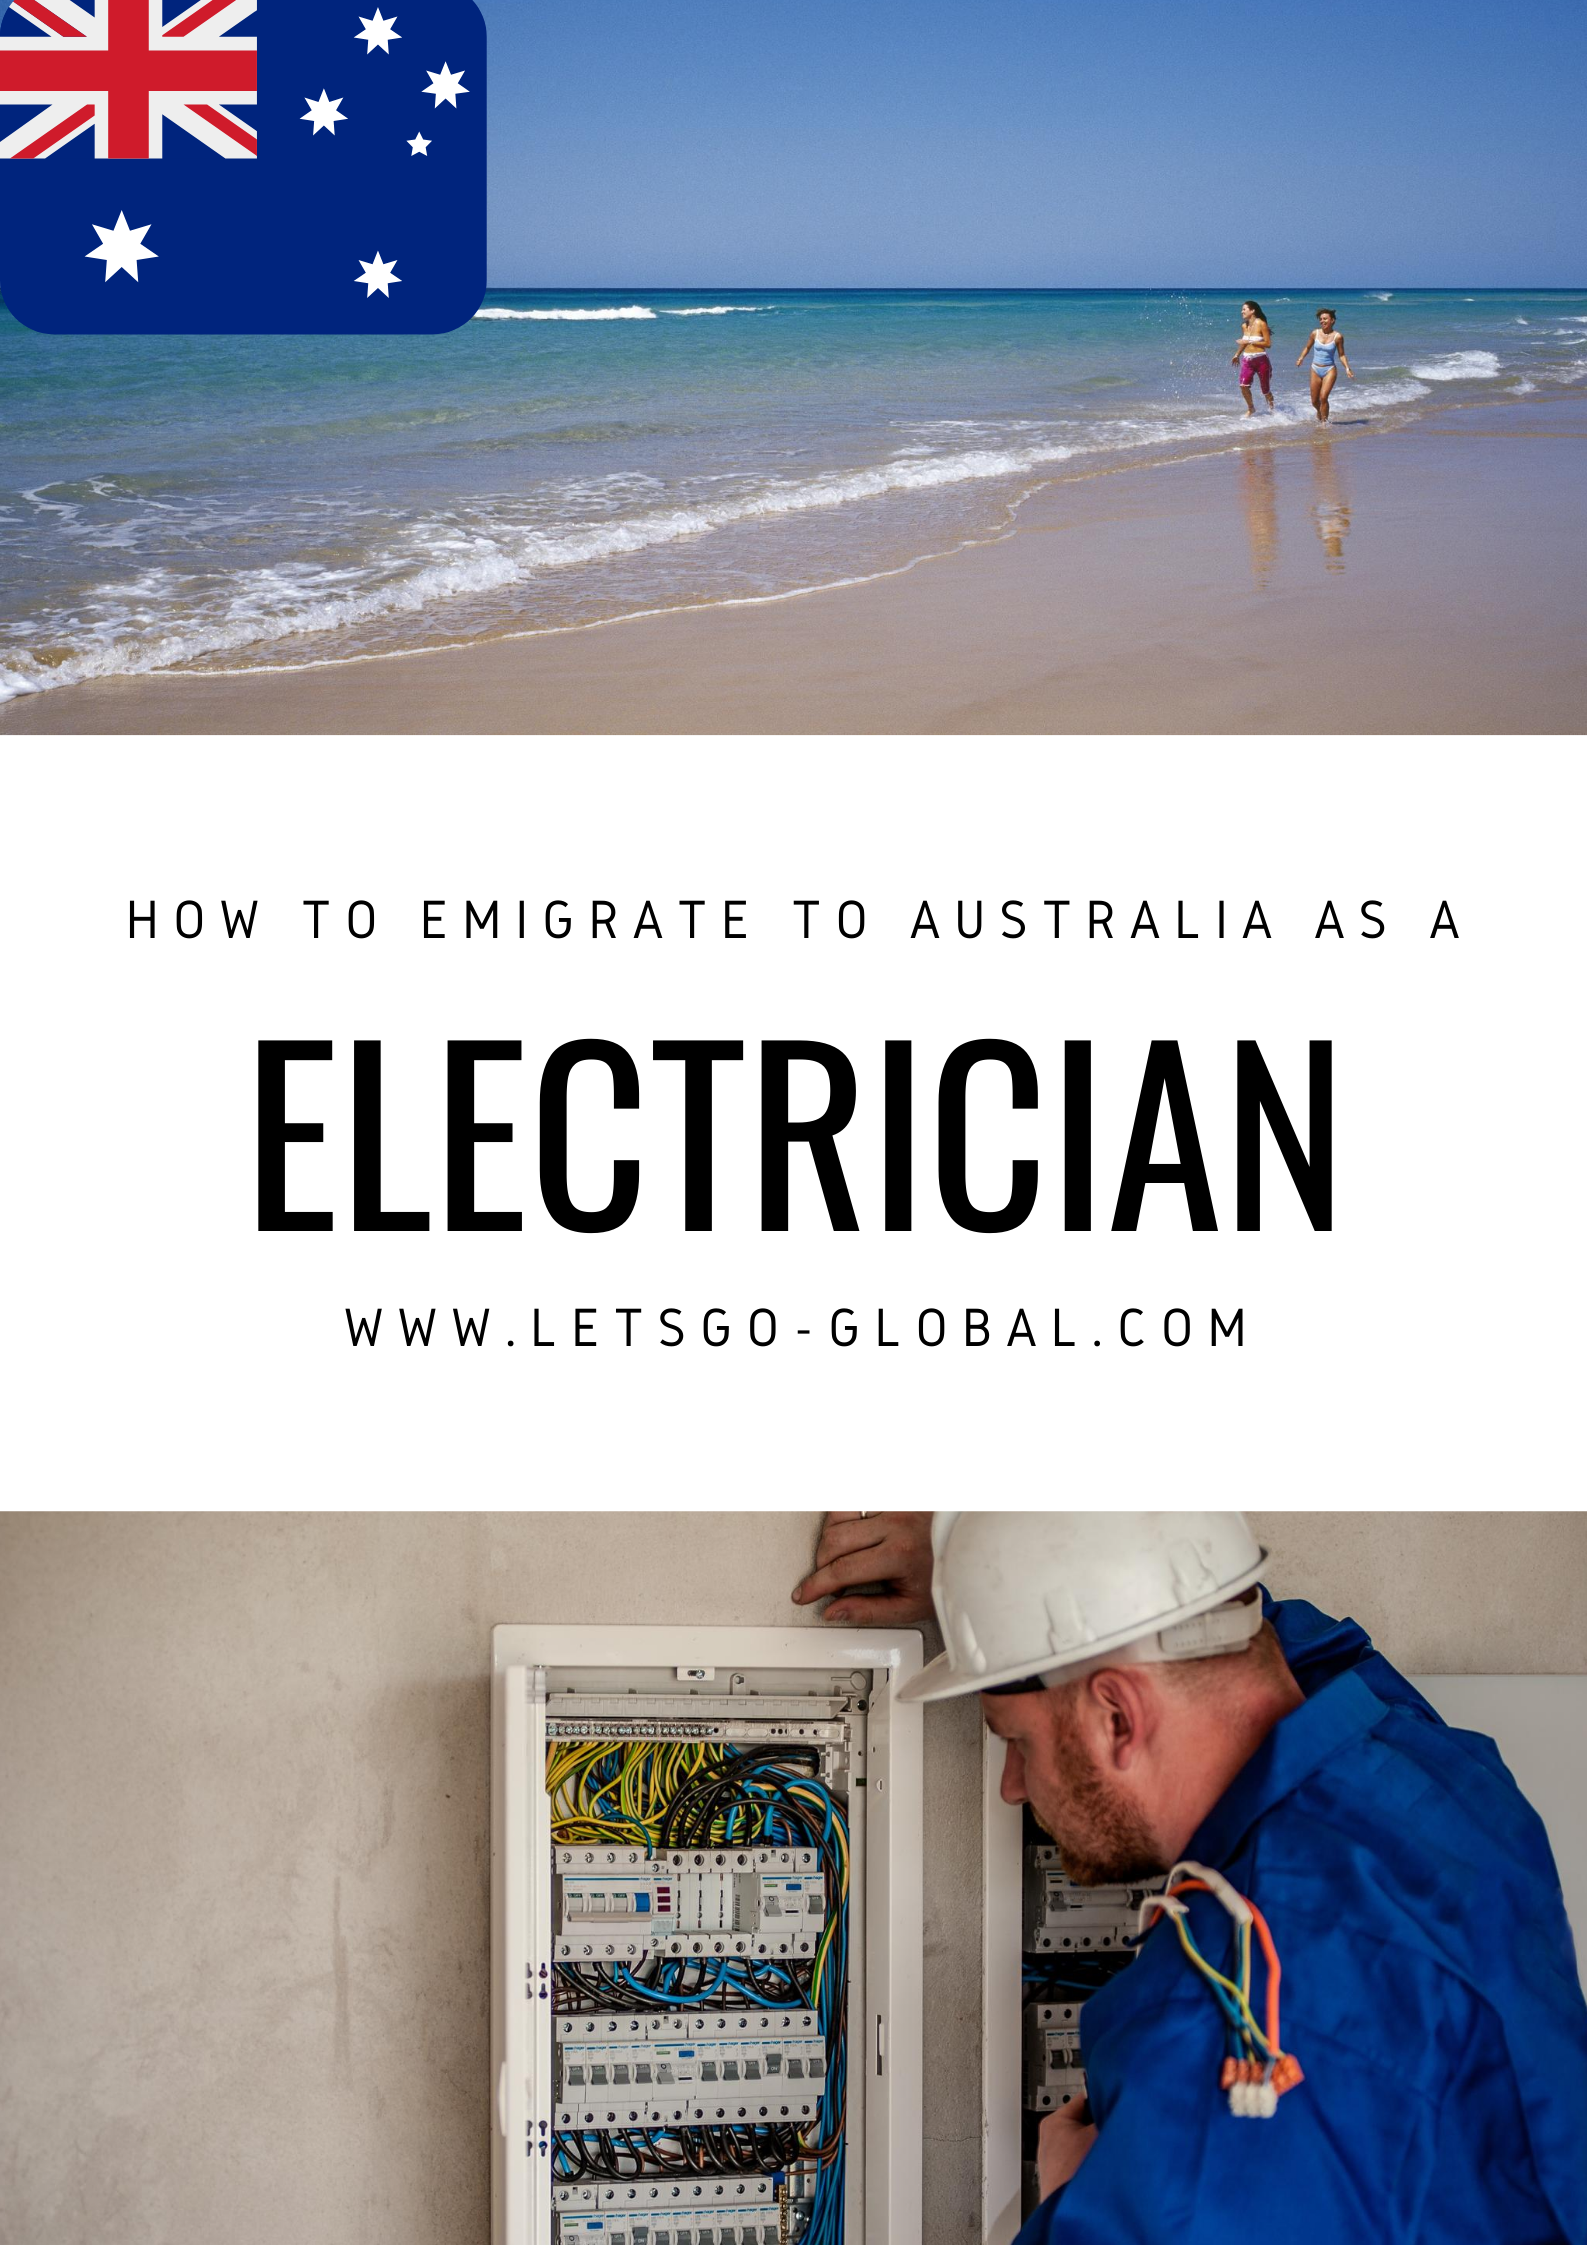 Migrate to Australia as an Electrician